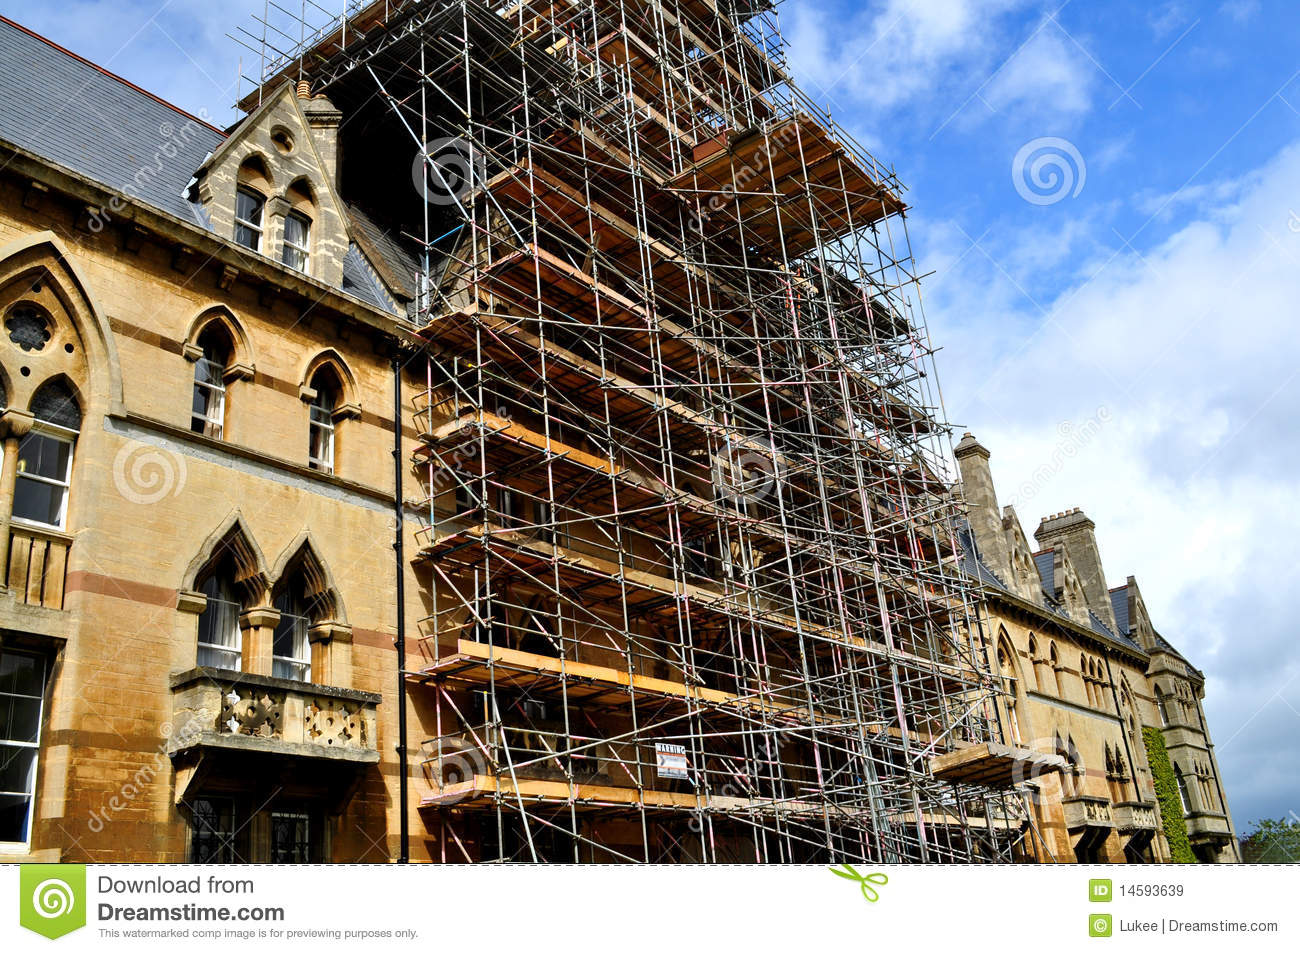 Scaffolding For Restoration Of An Old Building Stock Image   Image Of  Poles, Safety: 14593639